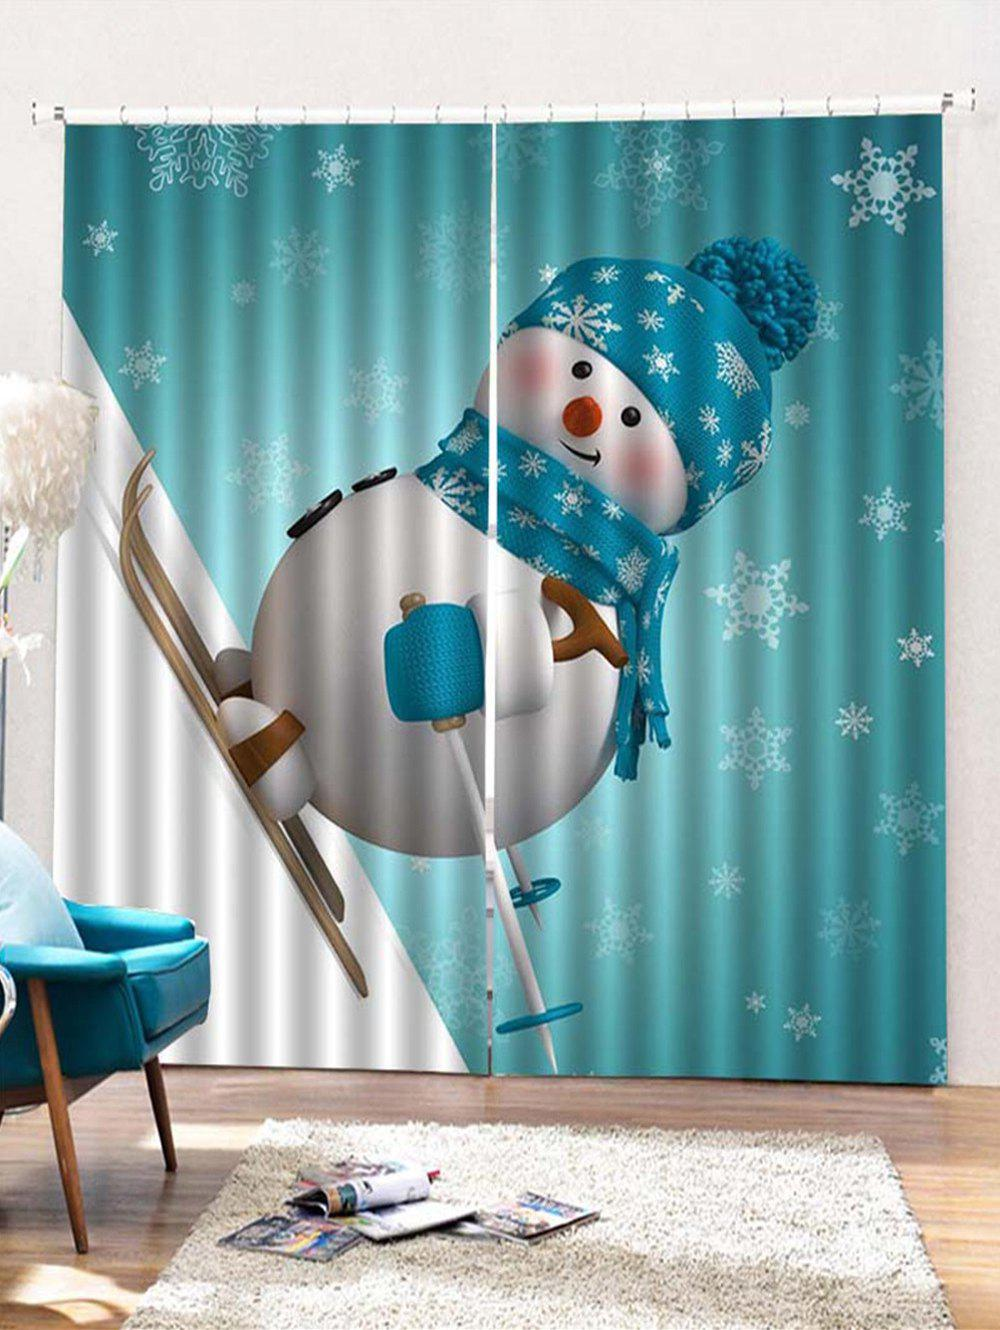 Hot 2PCS Skiing Christmas Snowman Pattern Window Curtains